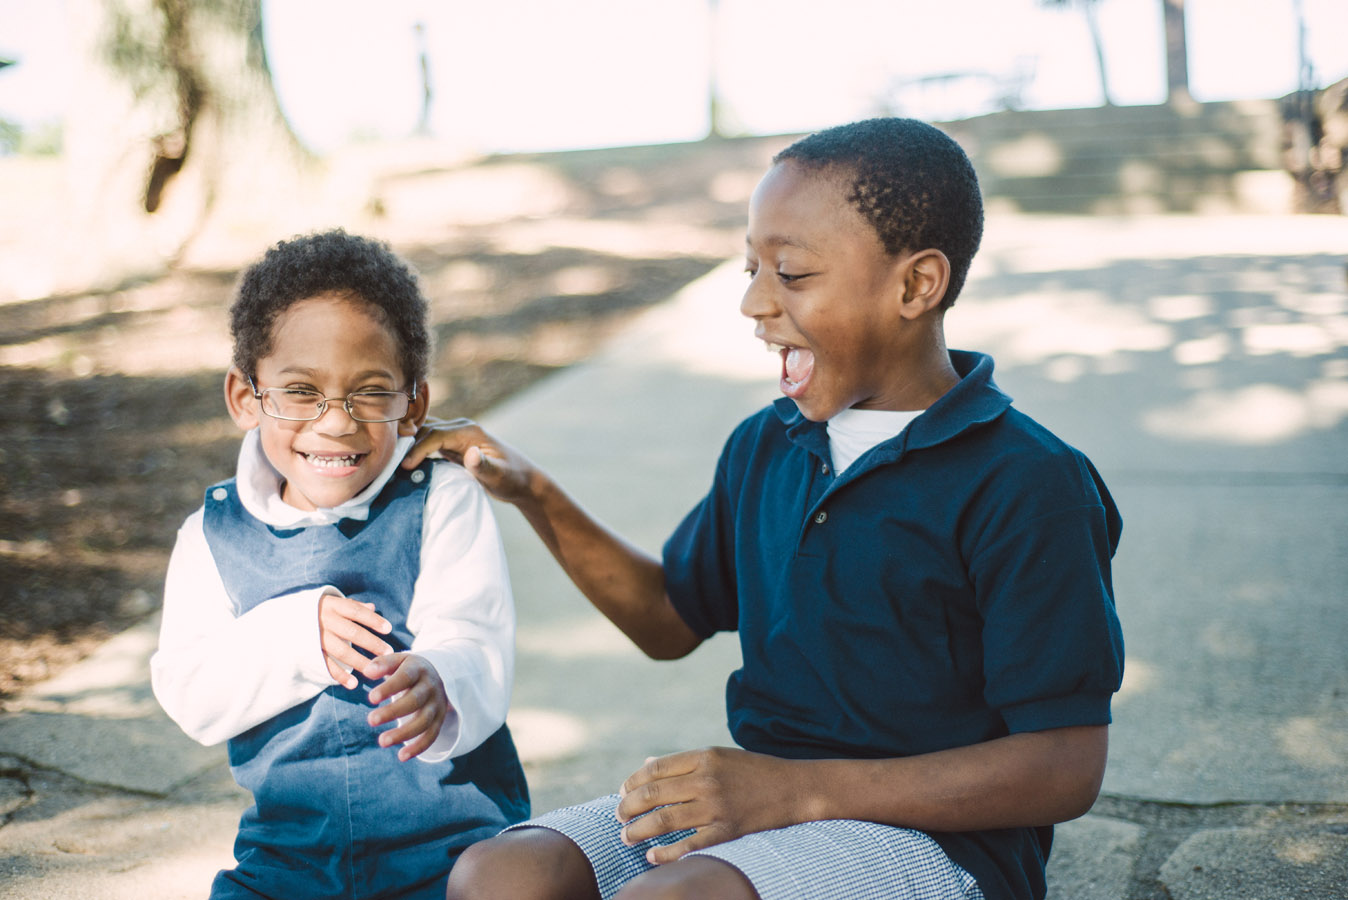 Brothers Laughing Together Image